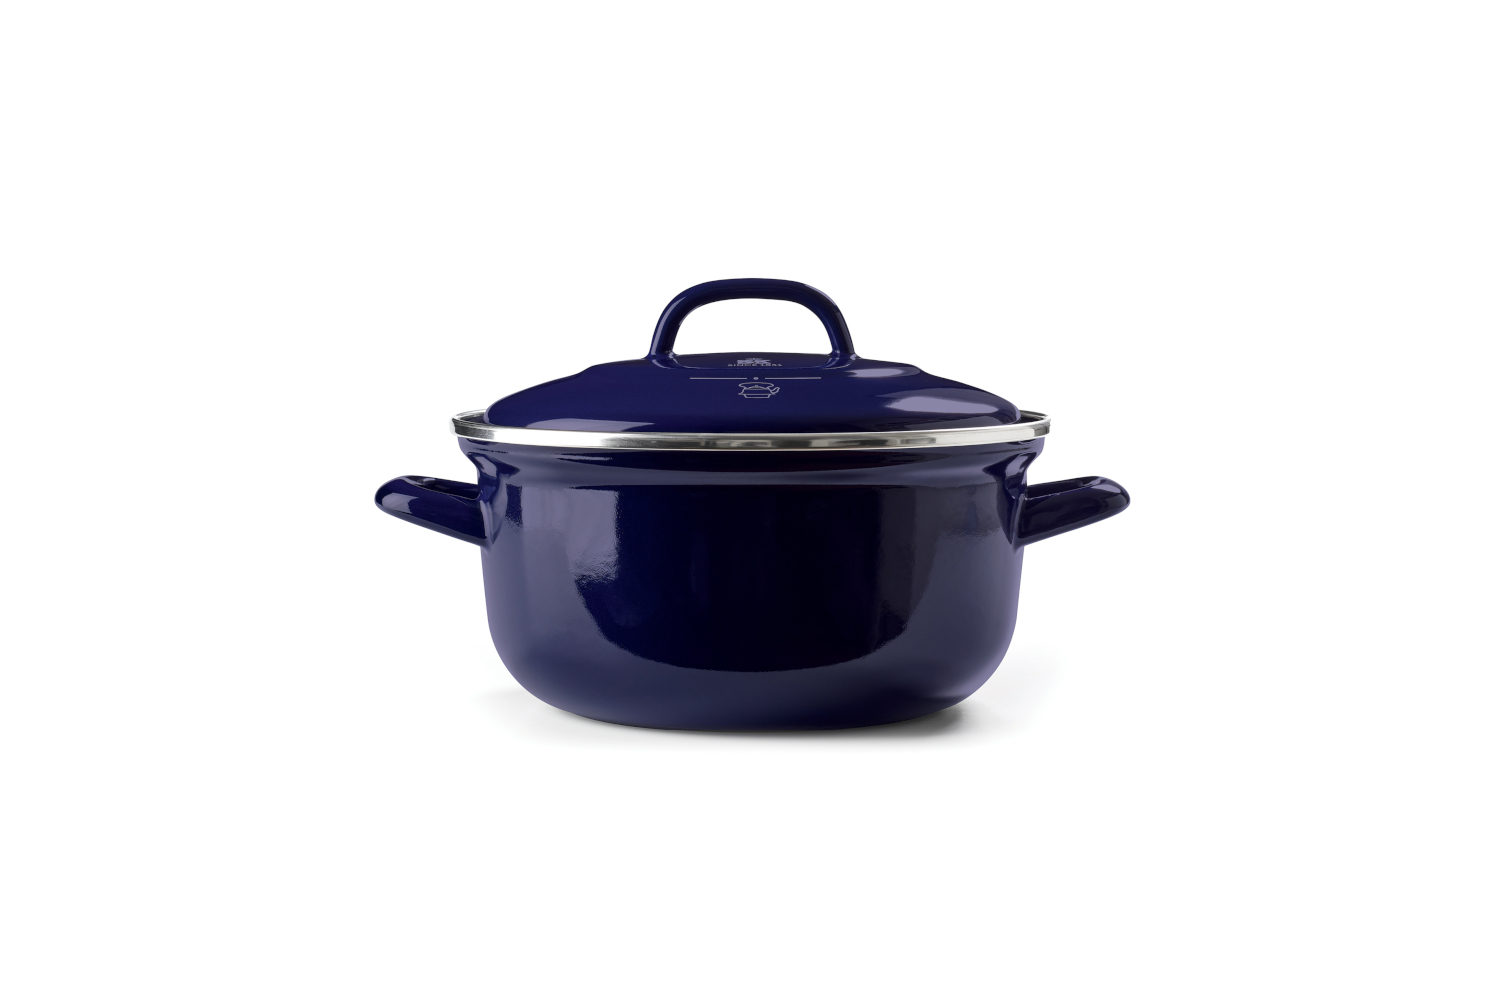 BK Enameled Steel 3 1/2 Quart Dutch Oven - Blue